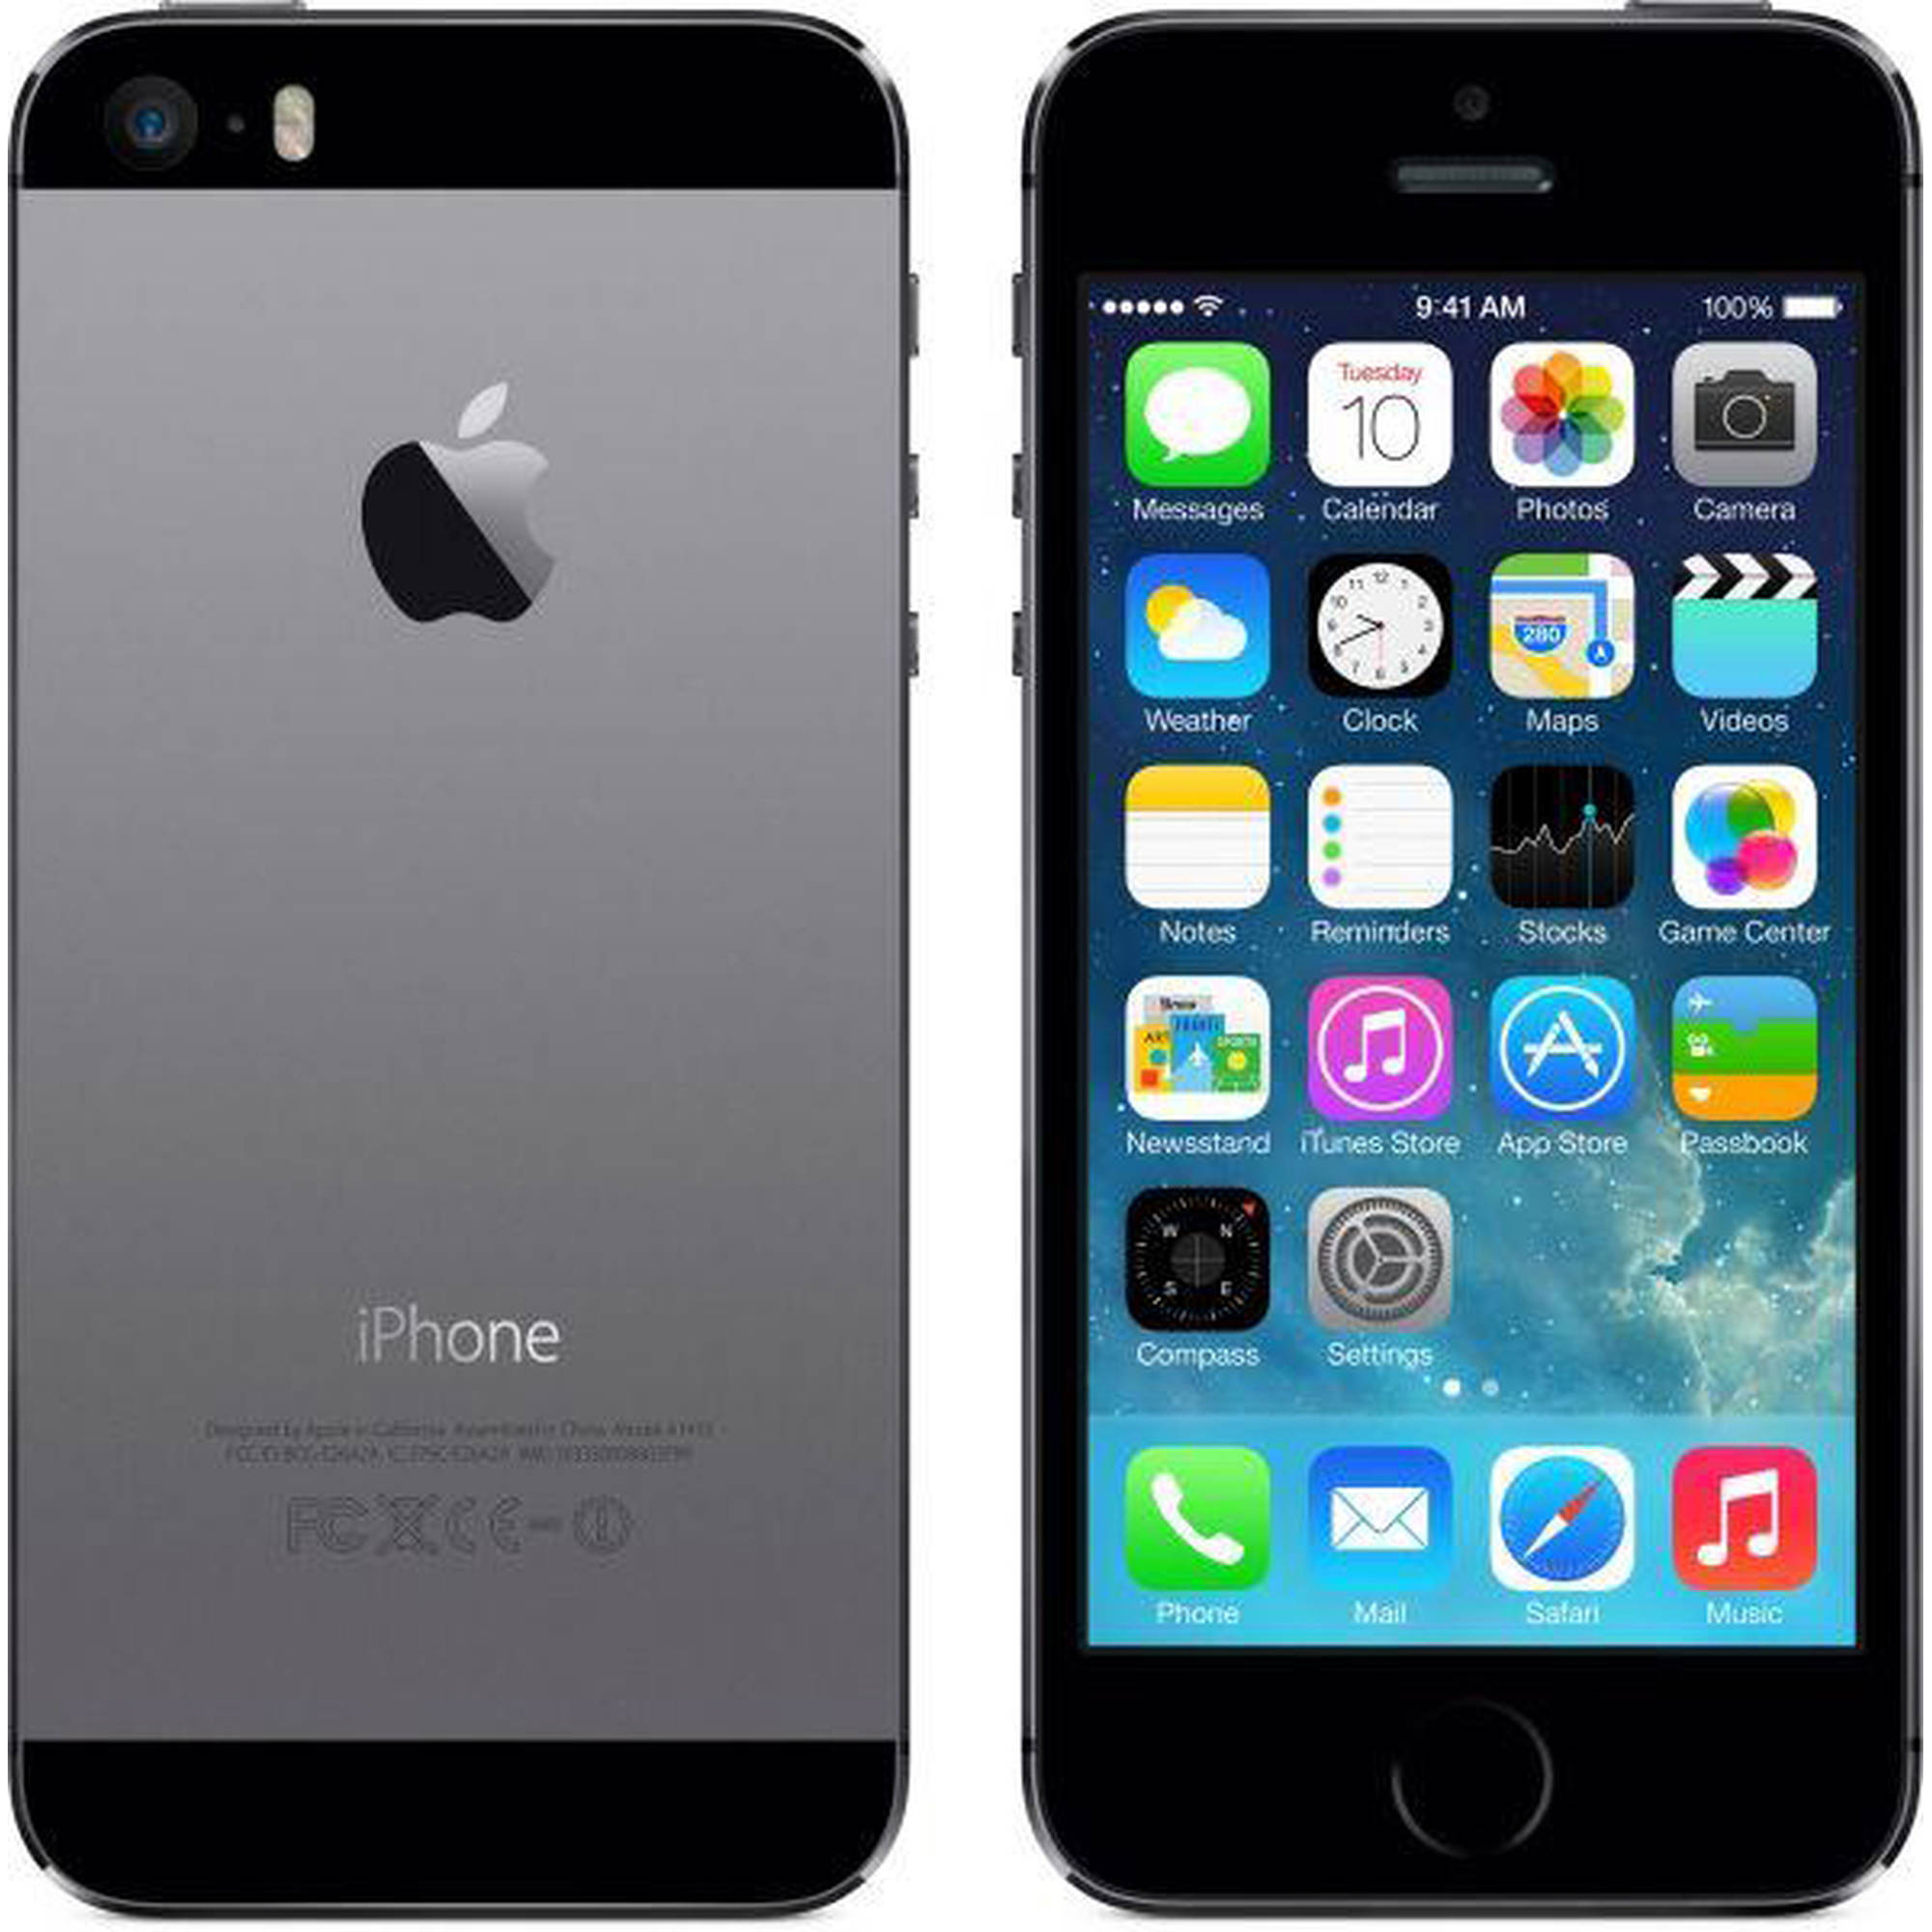 Refurbished apple iphone 5s 16gb gsm smartphone unlocked walmart com